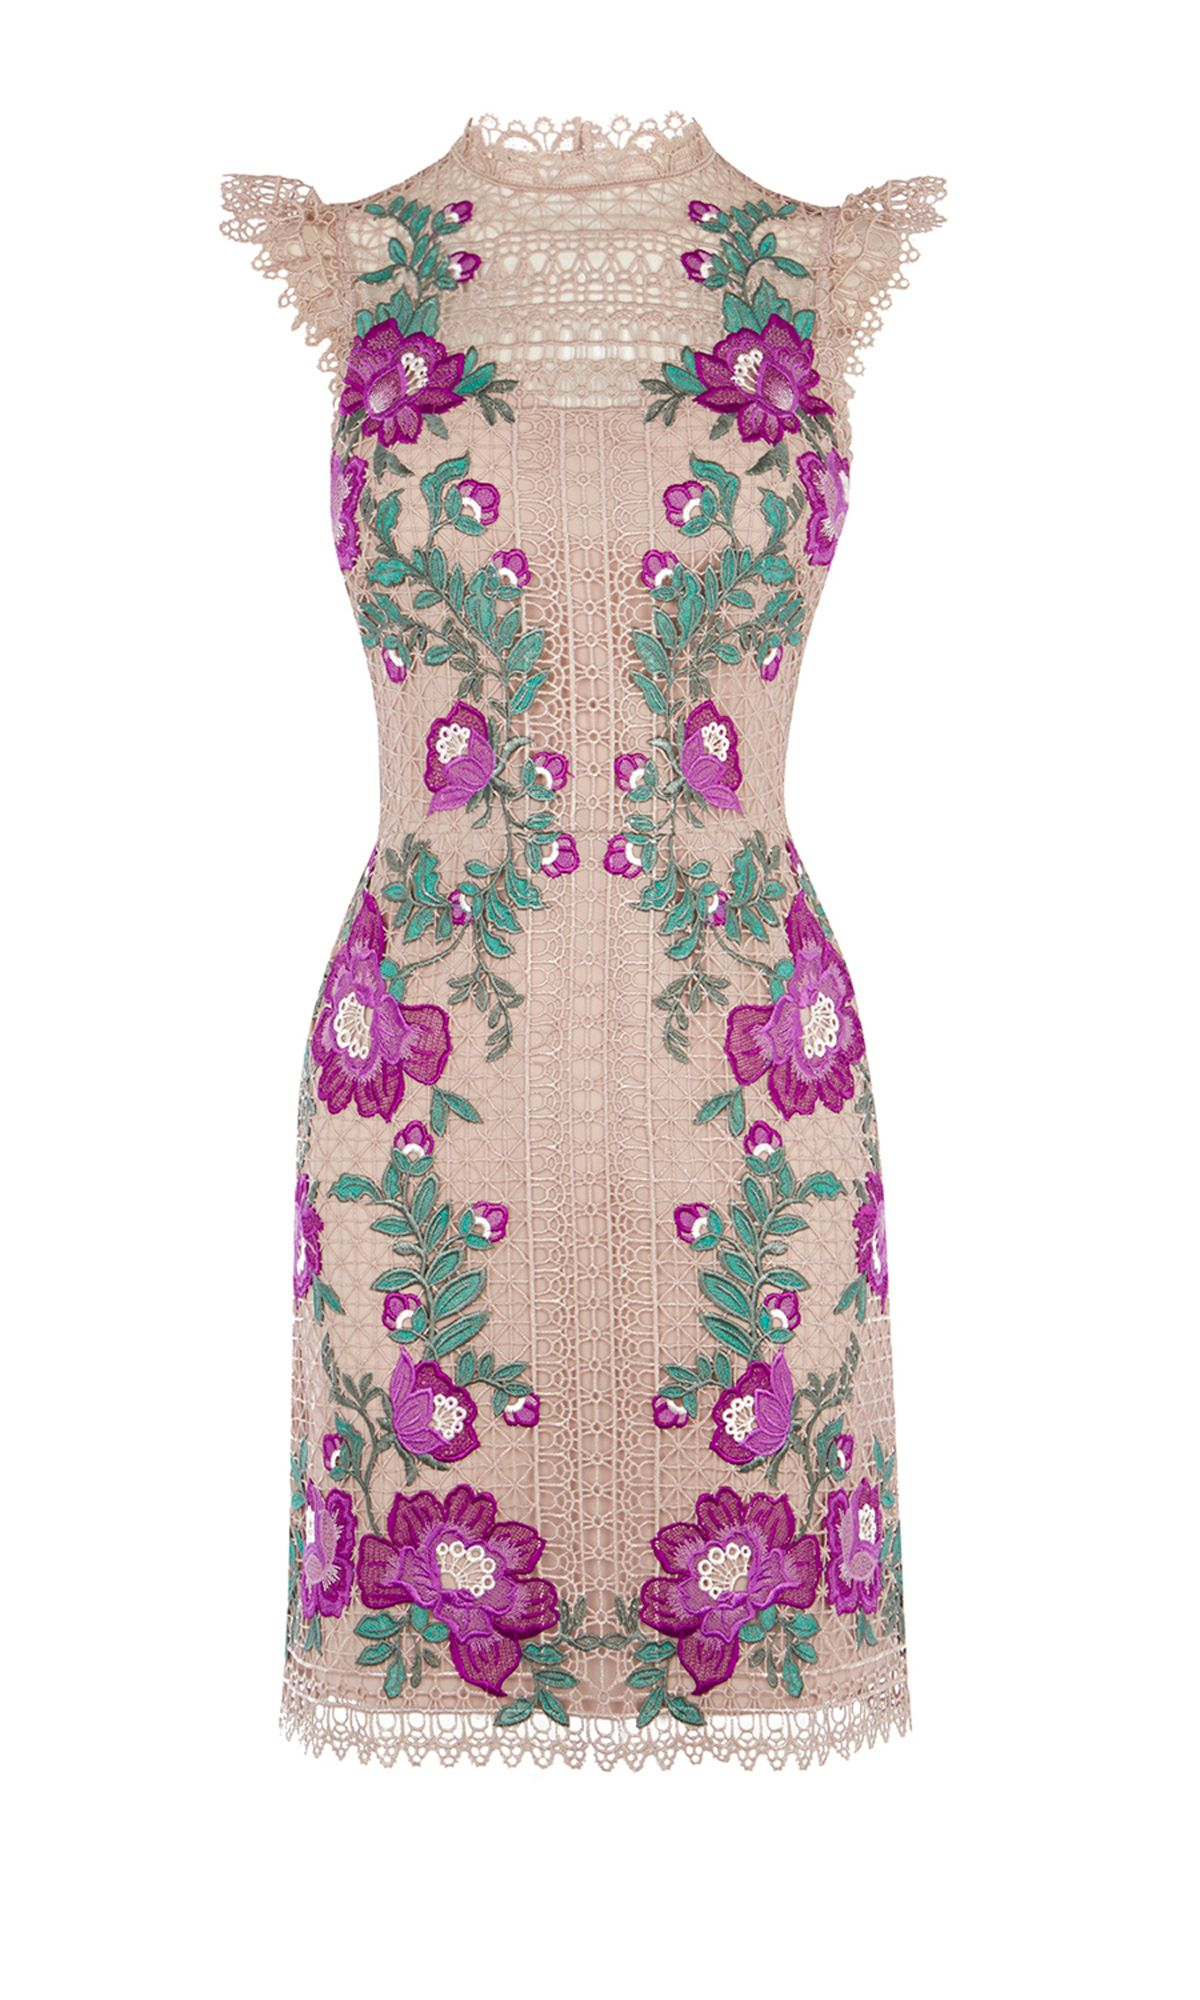 Karen Millen Floral Embroidered Mini Dress, Multi-Coloured